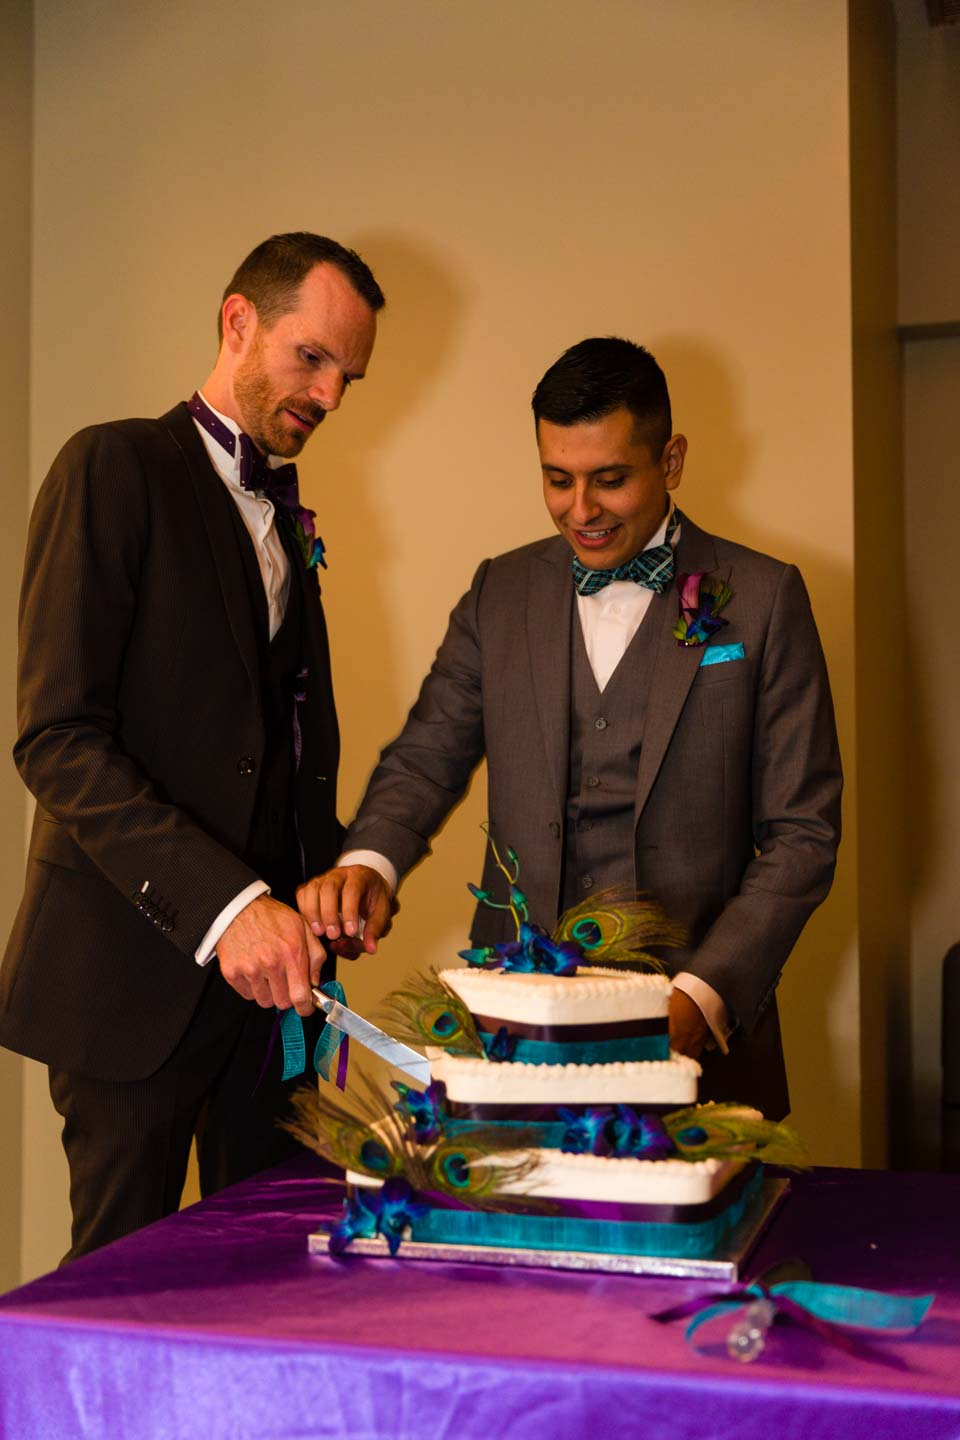 Grooms cutting the wedding cake